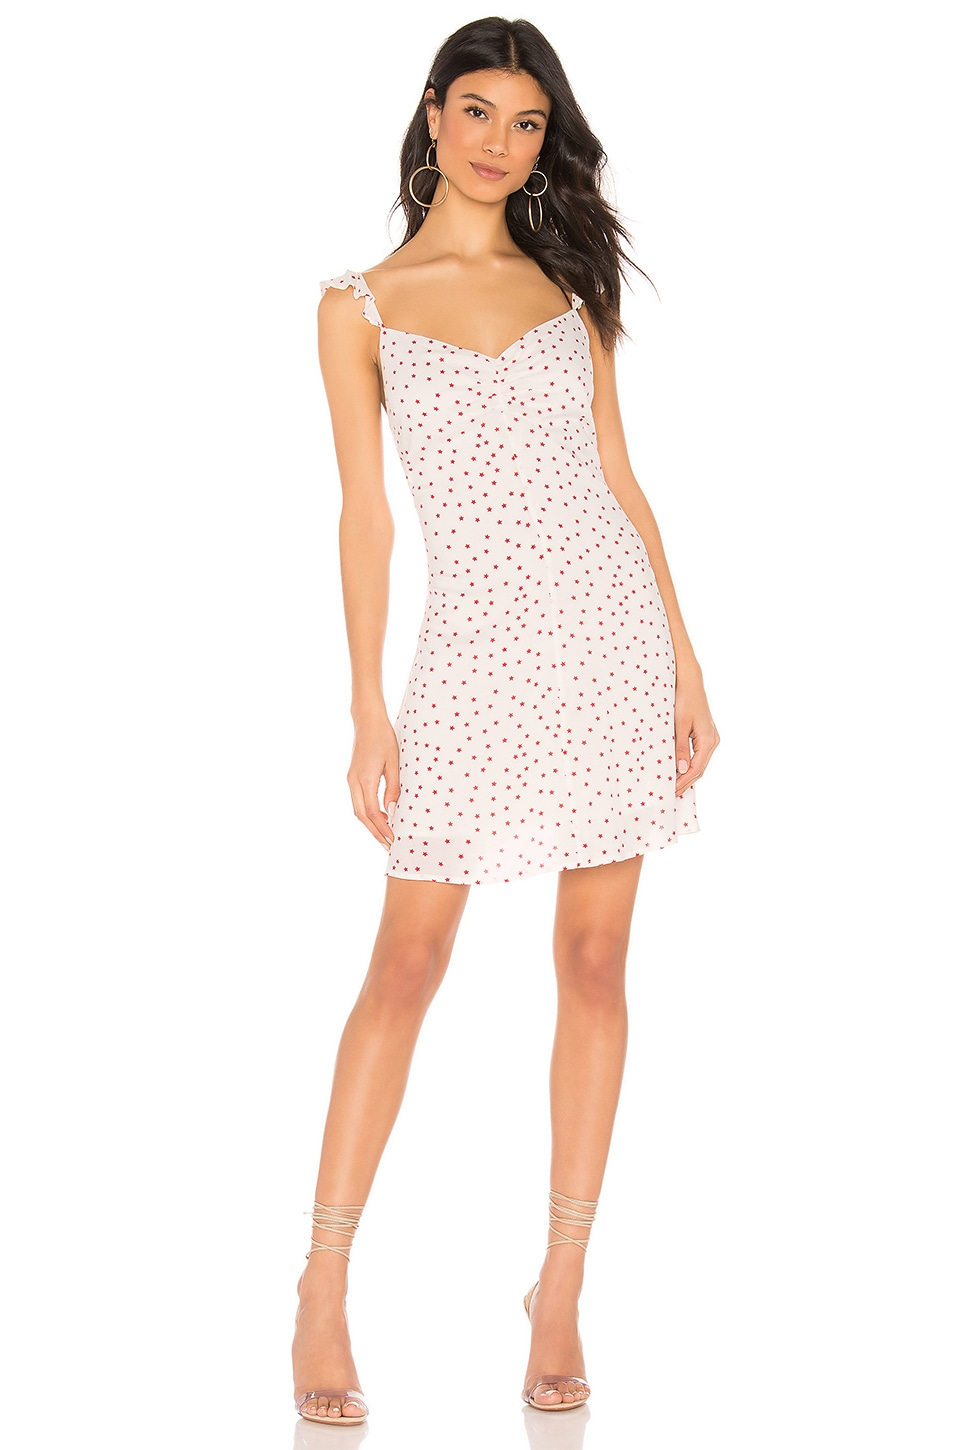 BB Dakota Stars Align Dress in Ivory